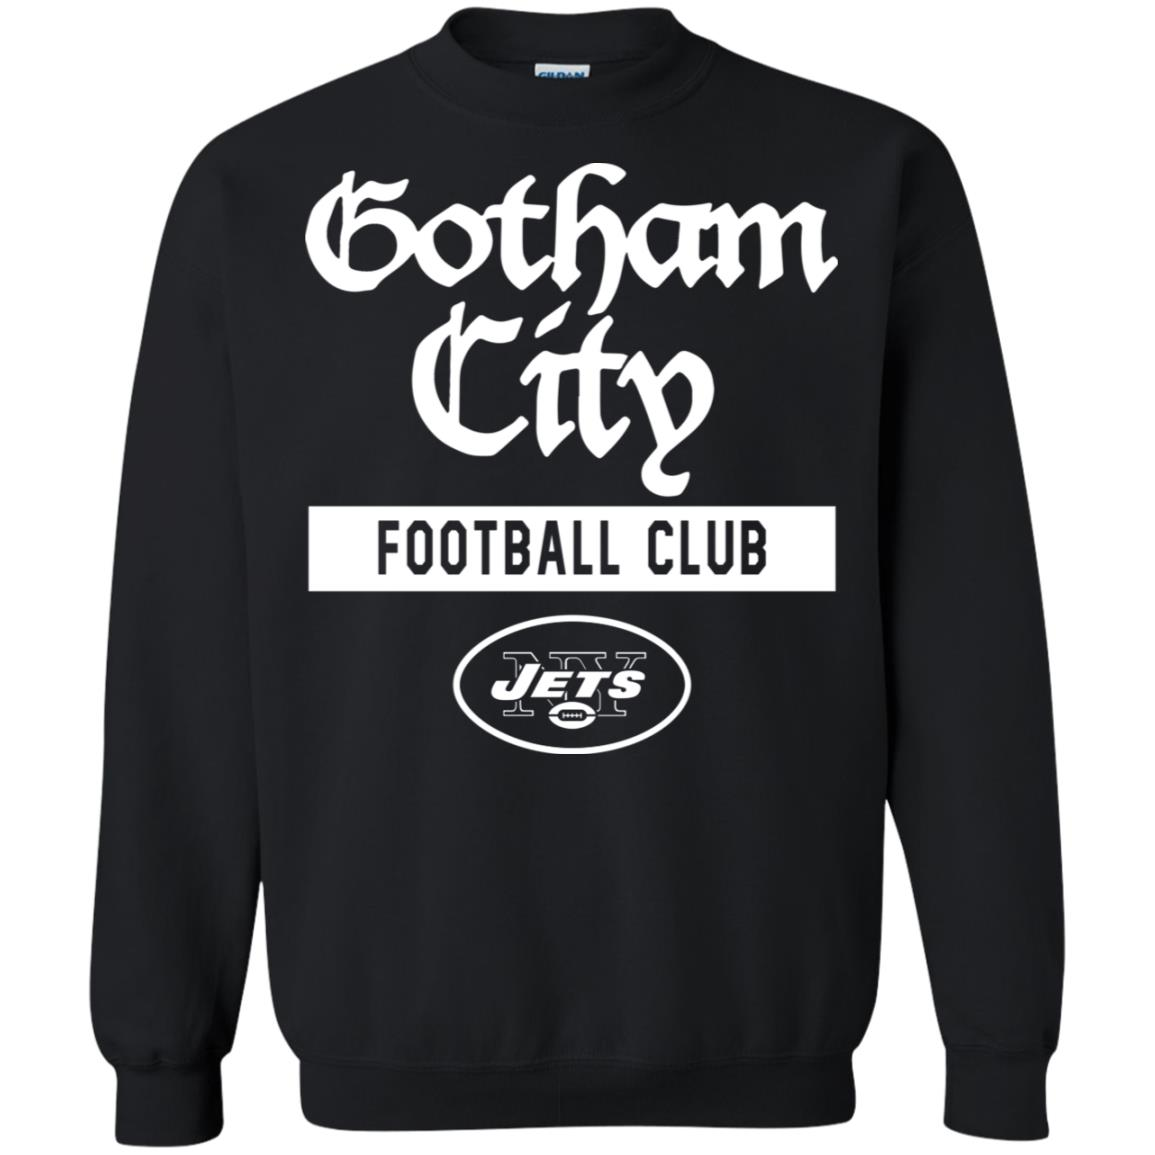 944b8a0da New York Jets Gotham City shirt - image 4216 510x510